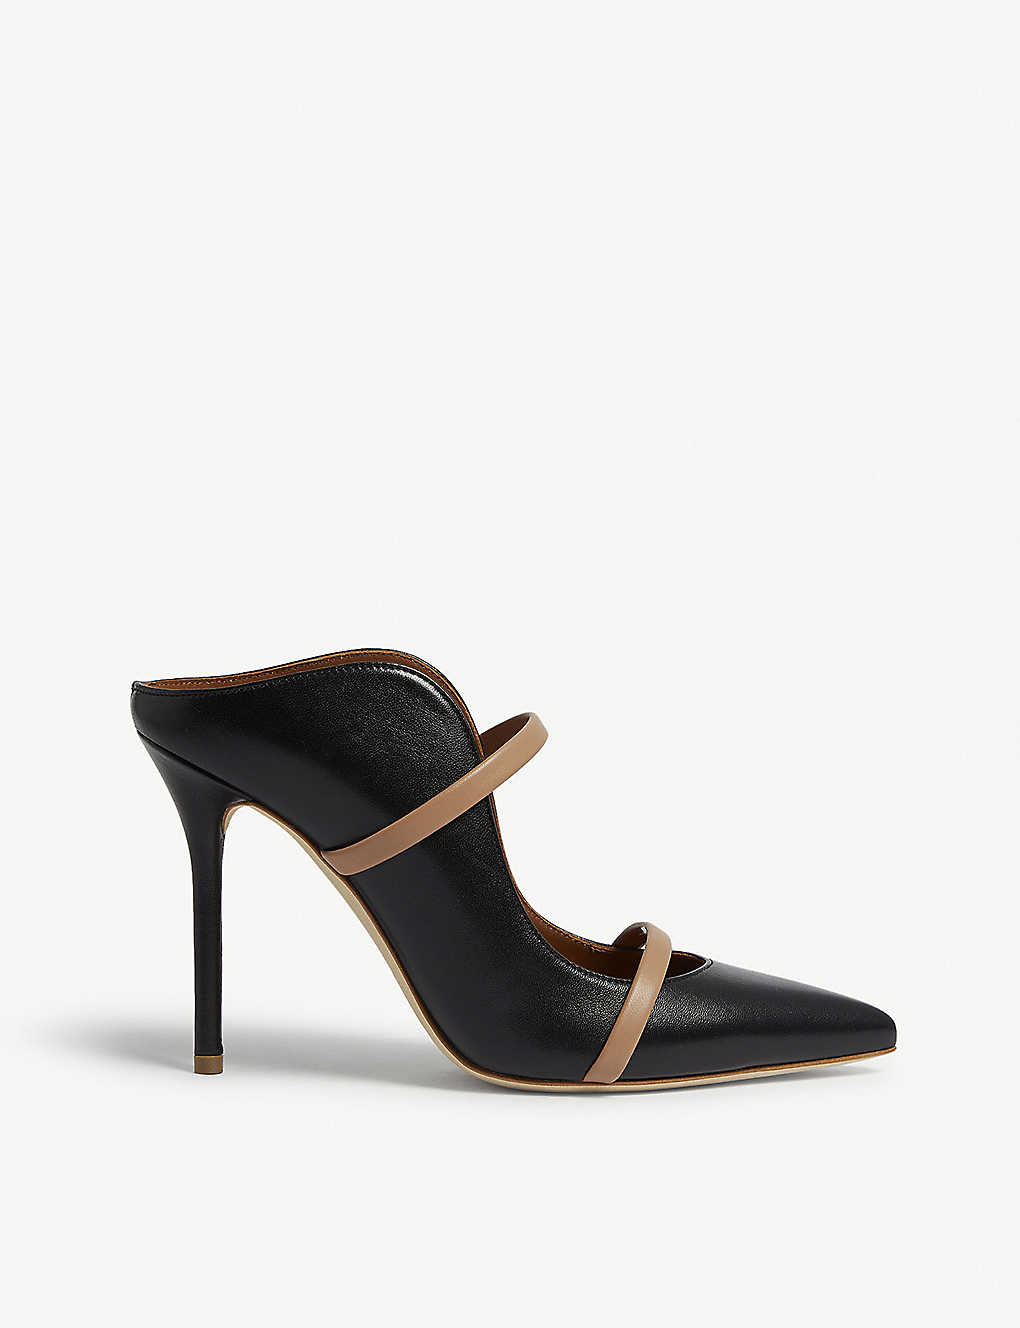 MALONE SOULIERS: Maureen leather mules